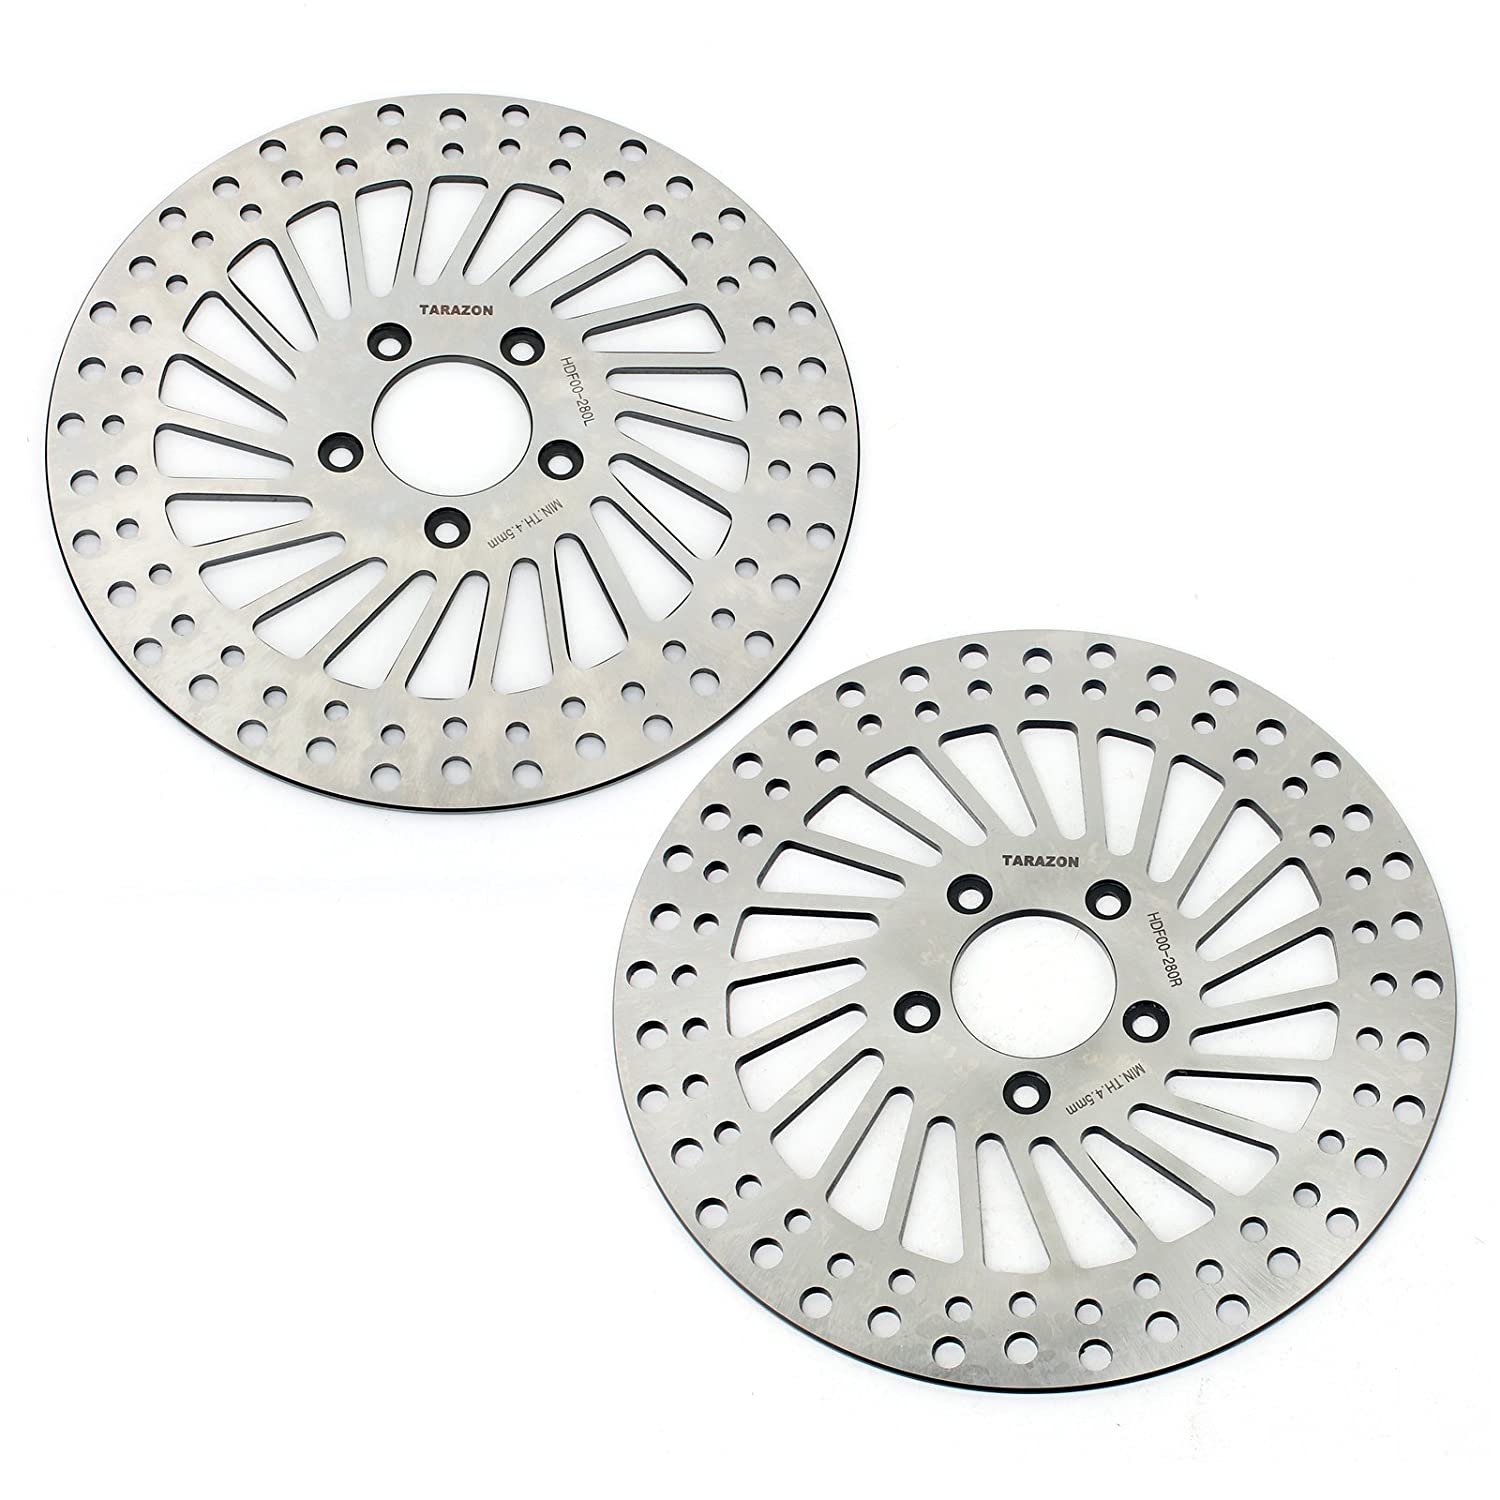 TARAZON 2pcs Front Brake Rotors for Harley Davidson Touring Bike Electra Glide Road King Road Glide Ultra Electra Glide 2000-2007